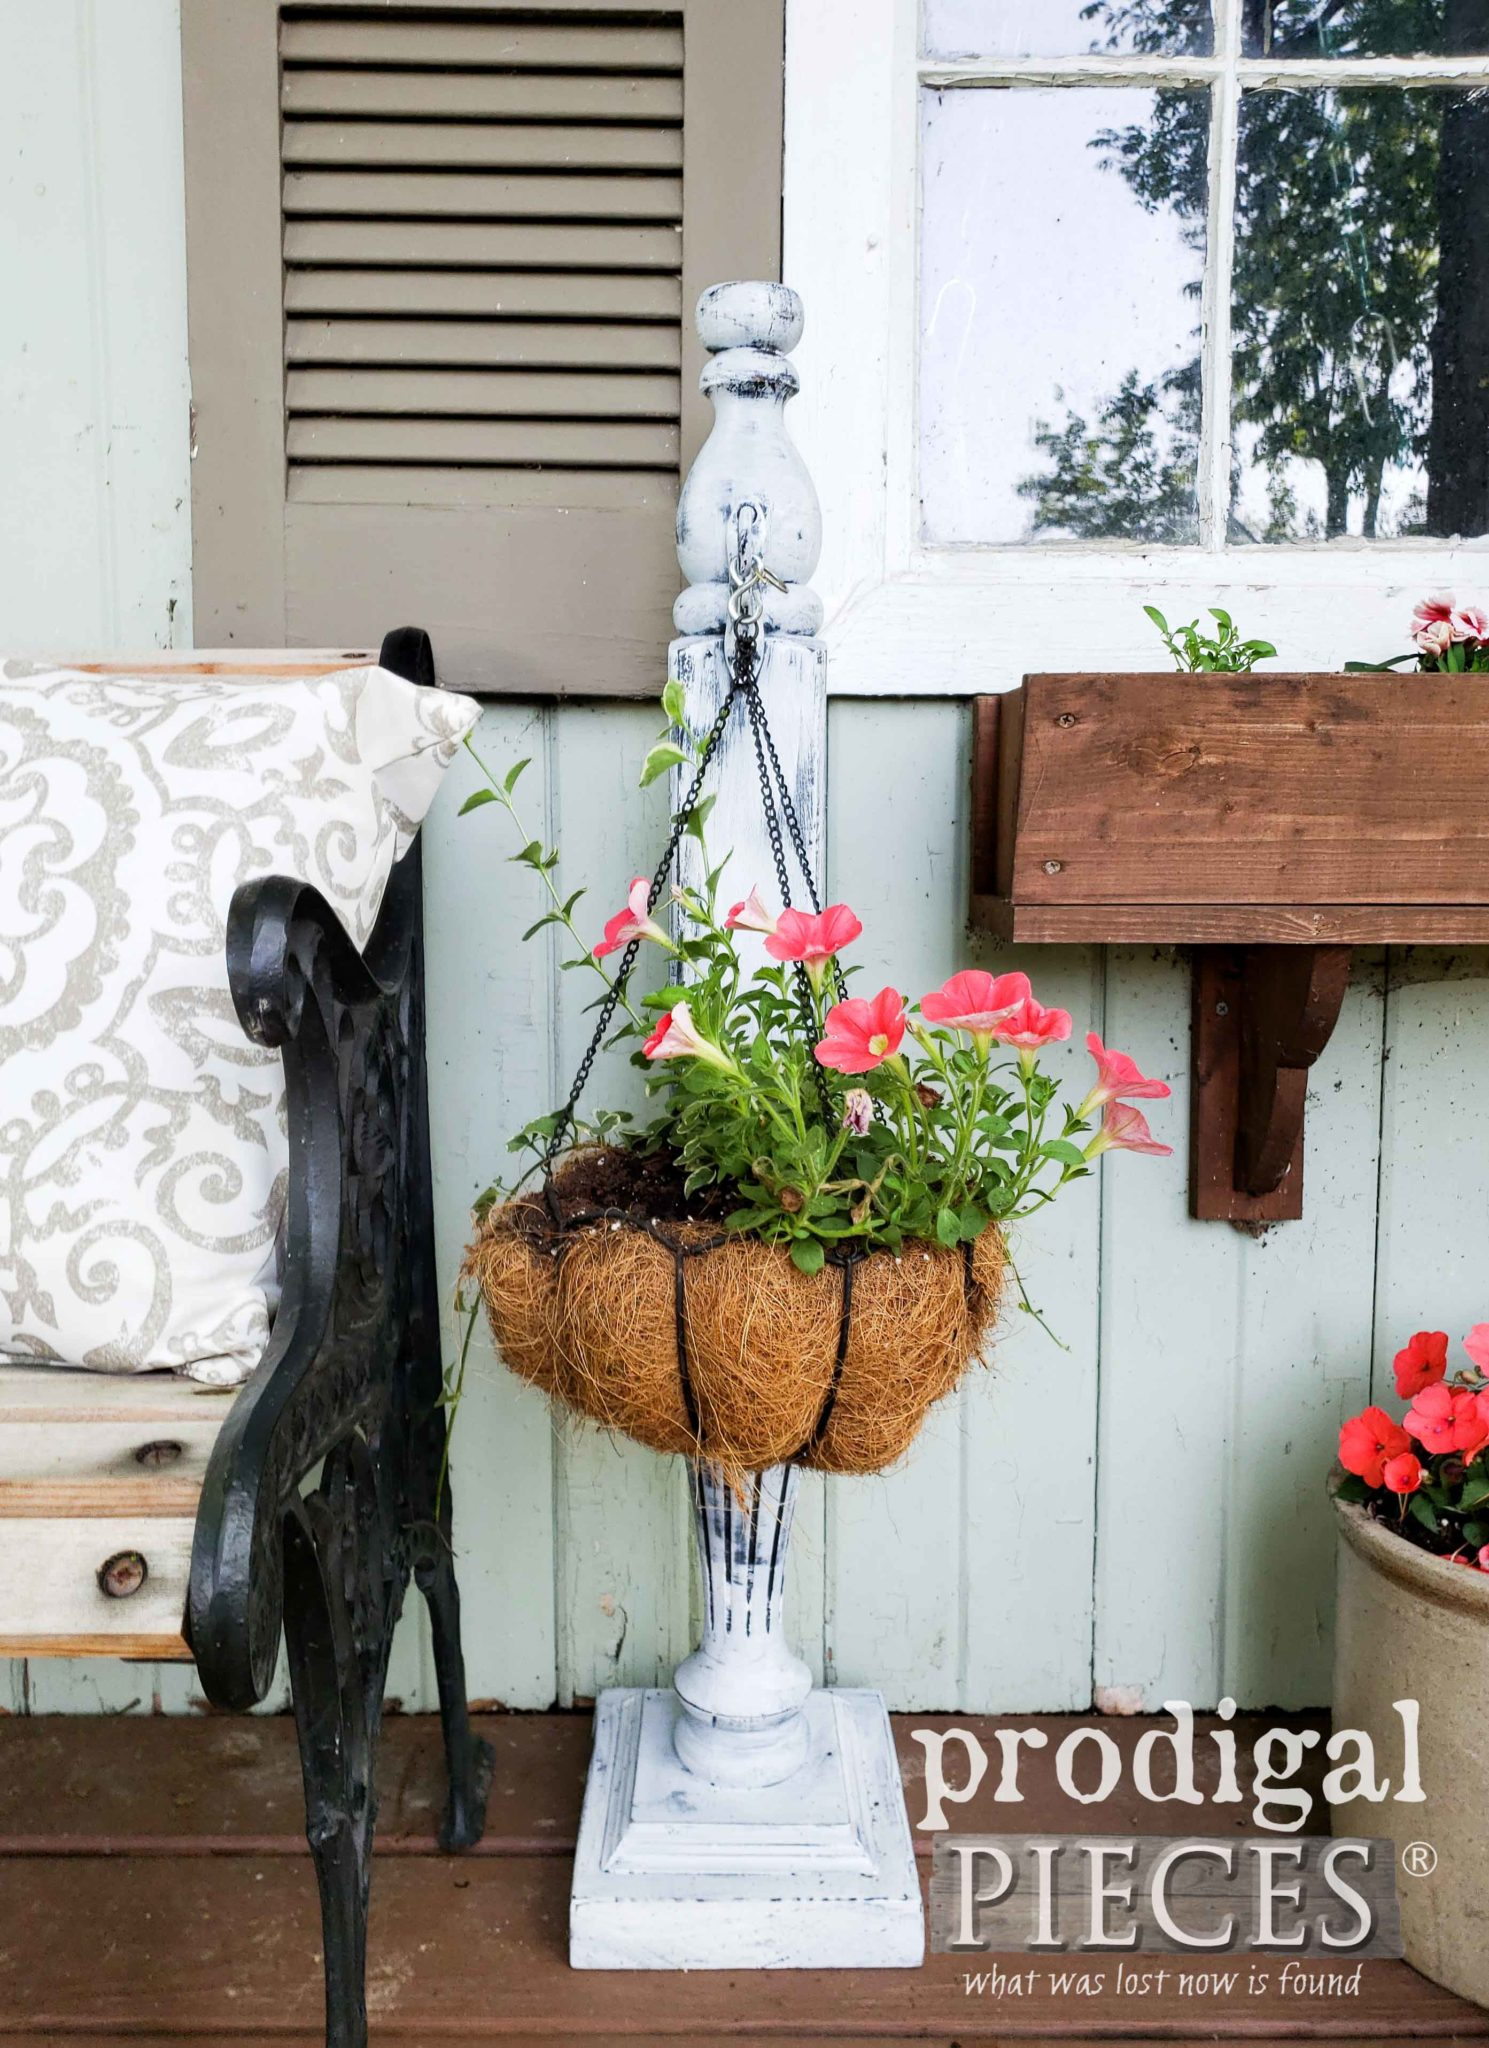 Reclaimed Bed Post Plant Hanger for Garden Decor | Tutorial by Larissa of Prodigal Pieces | prodigalpieces.com #prodigalpieces #diy #home #homedecor #garden #farmhouse